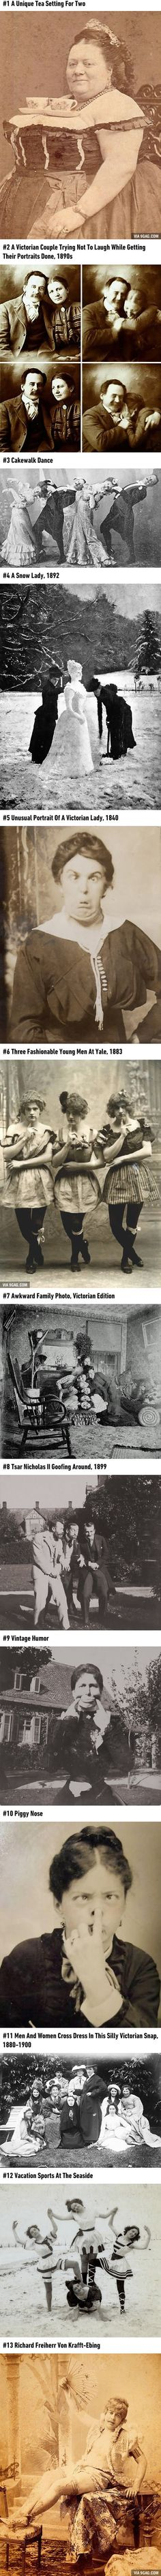 13 Rare Photos Of Victorians Proving They Weren't As Serious As You Thought - 9GAG